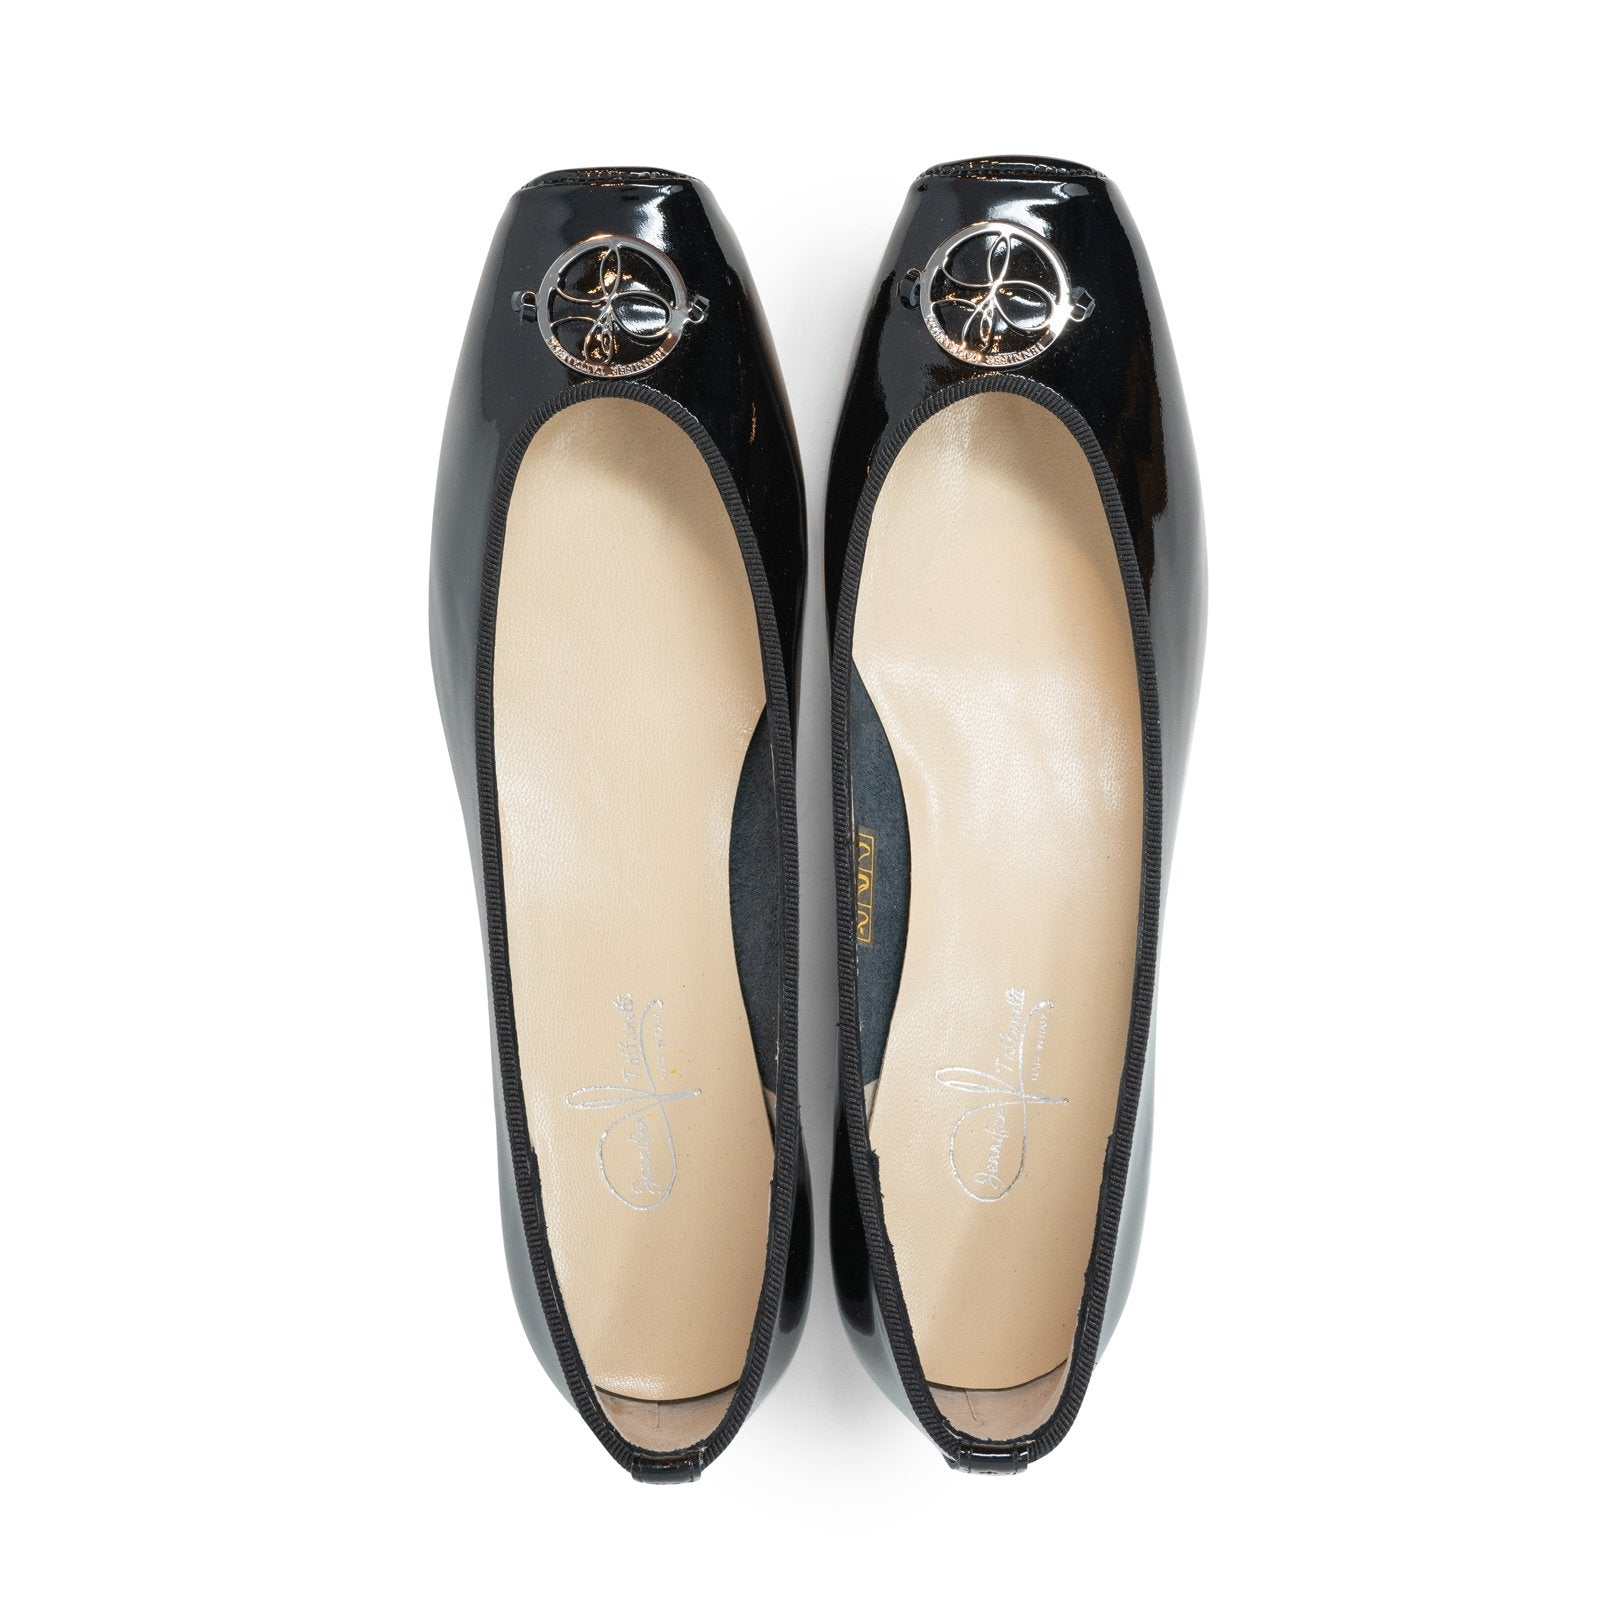 Women Ballerina Shoes with hidden heel in Patent Black - Jennifer Tattanelli